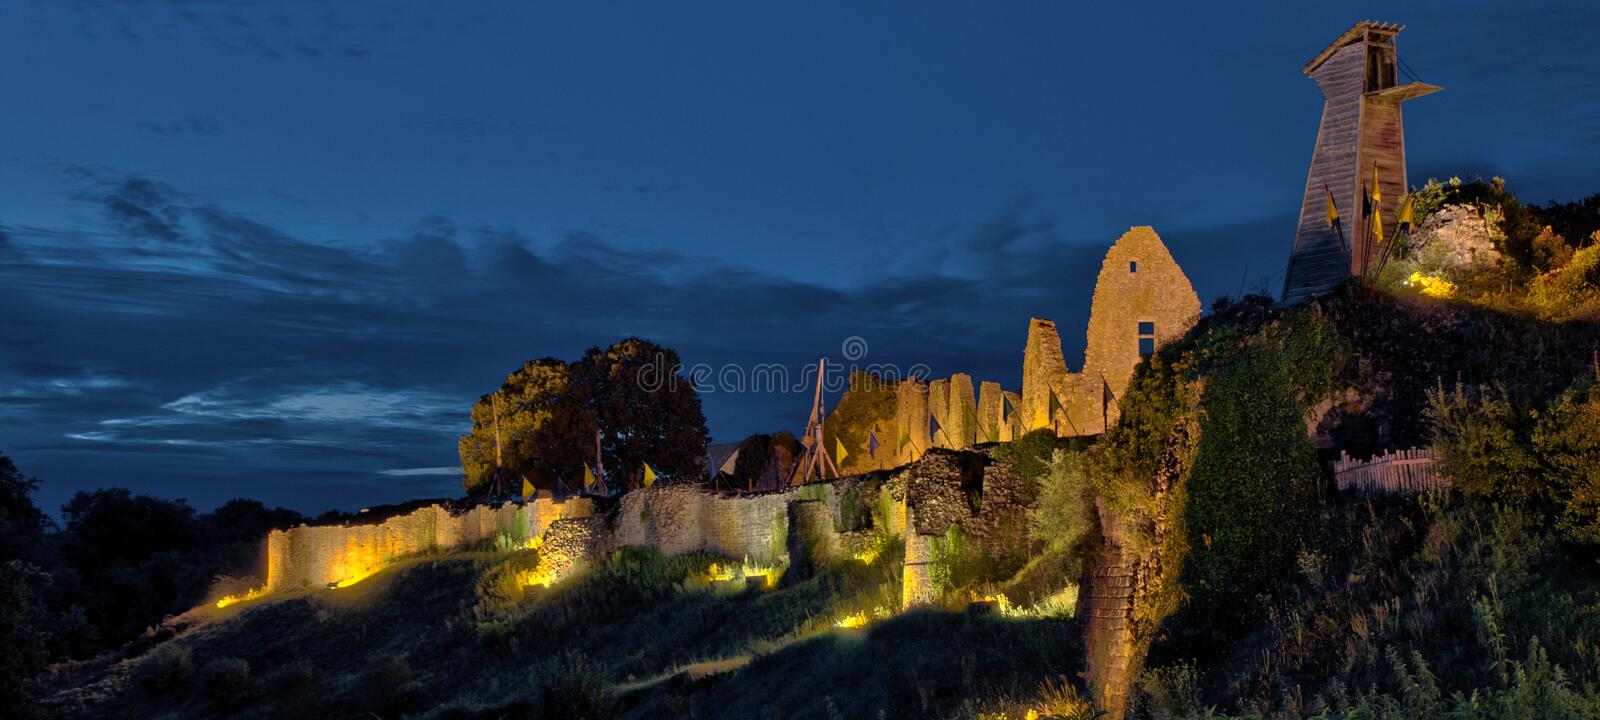 The night falls on the medieval fortress in Tiffauges stock photo